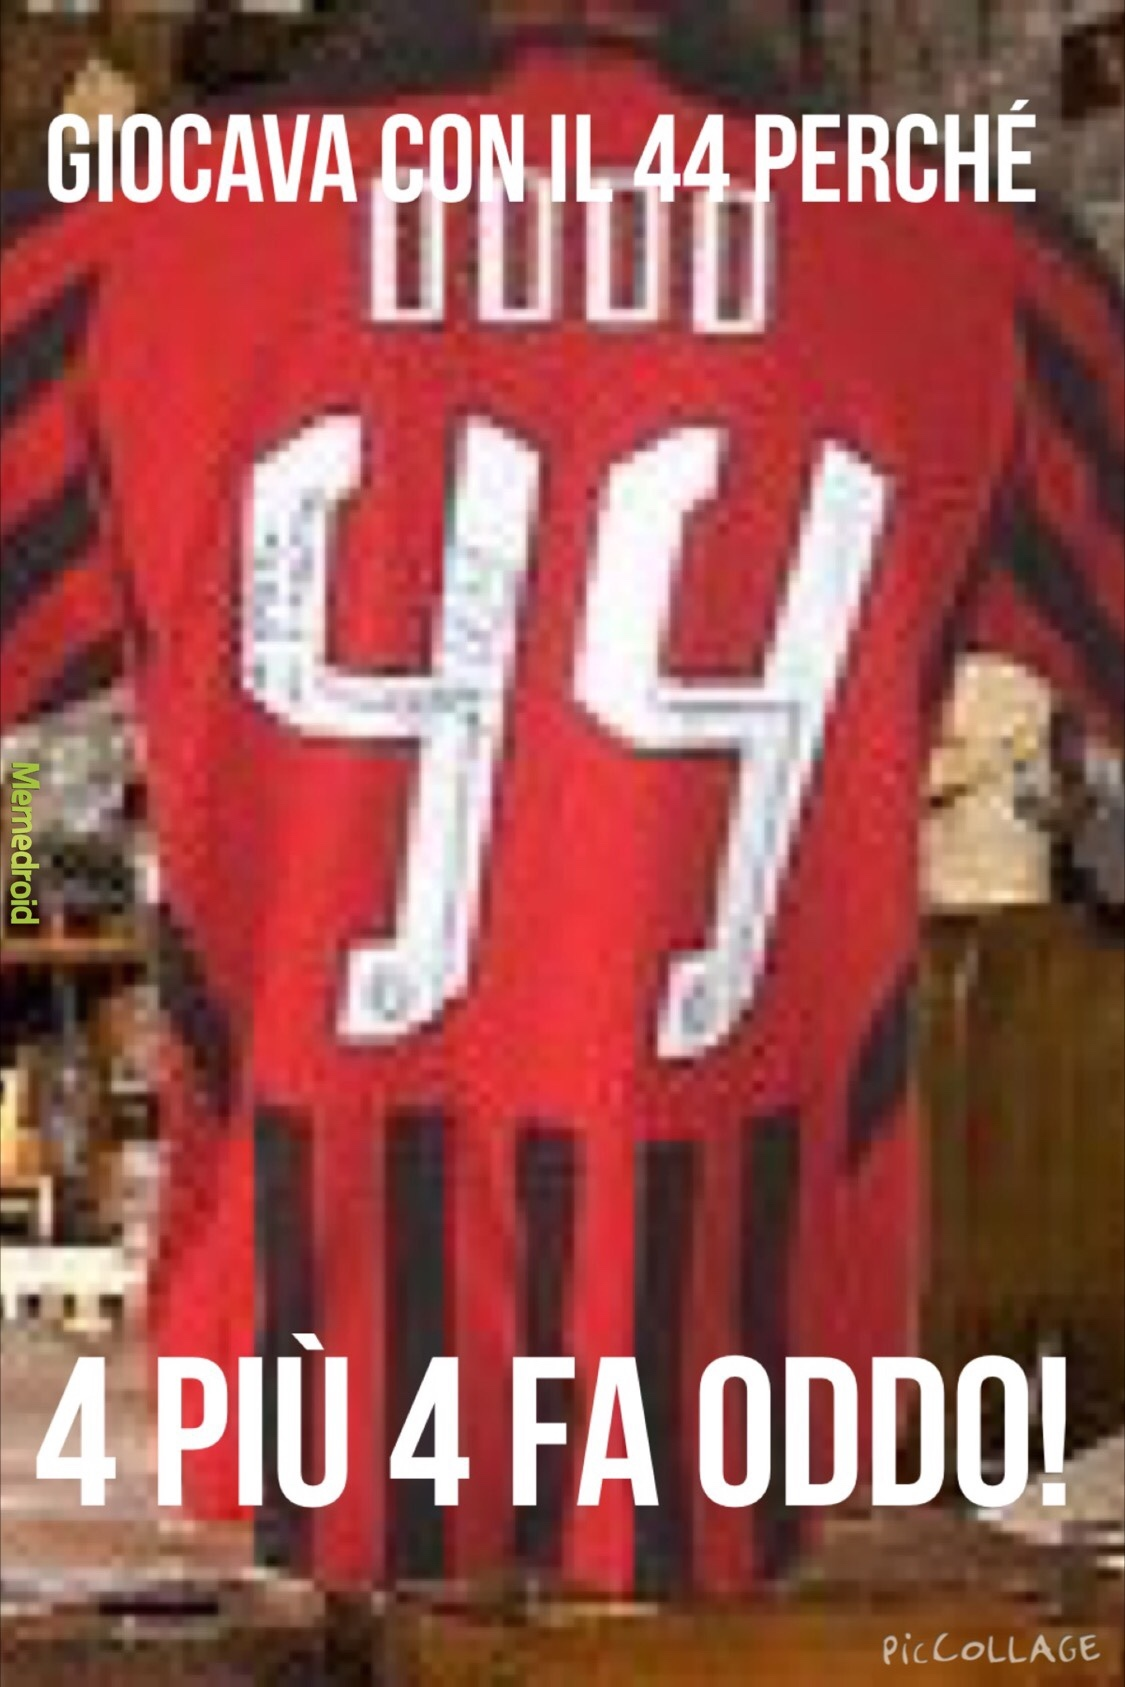 Calciatori birichini - meme